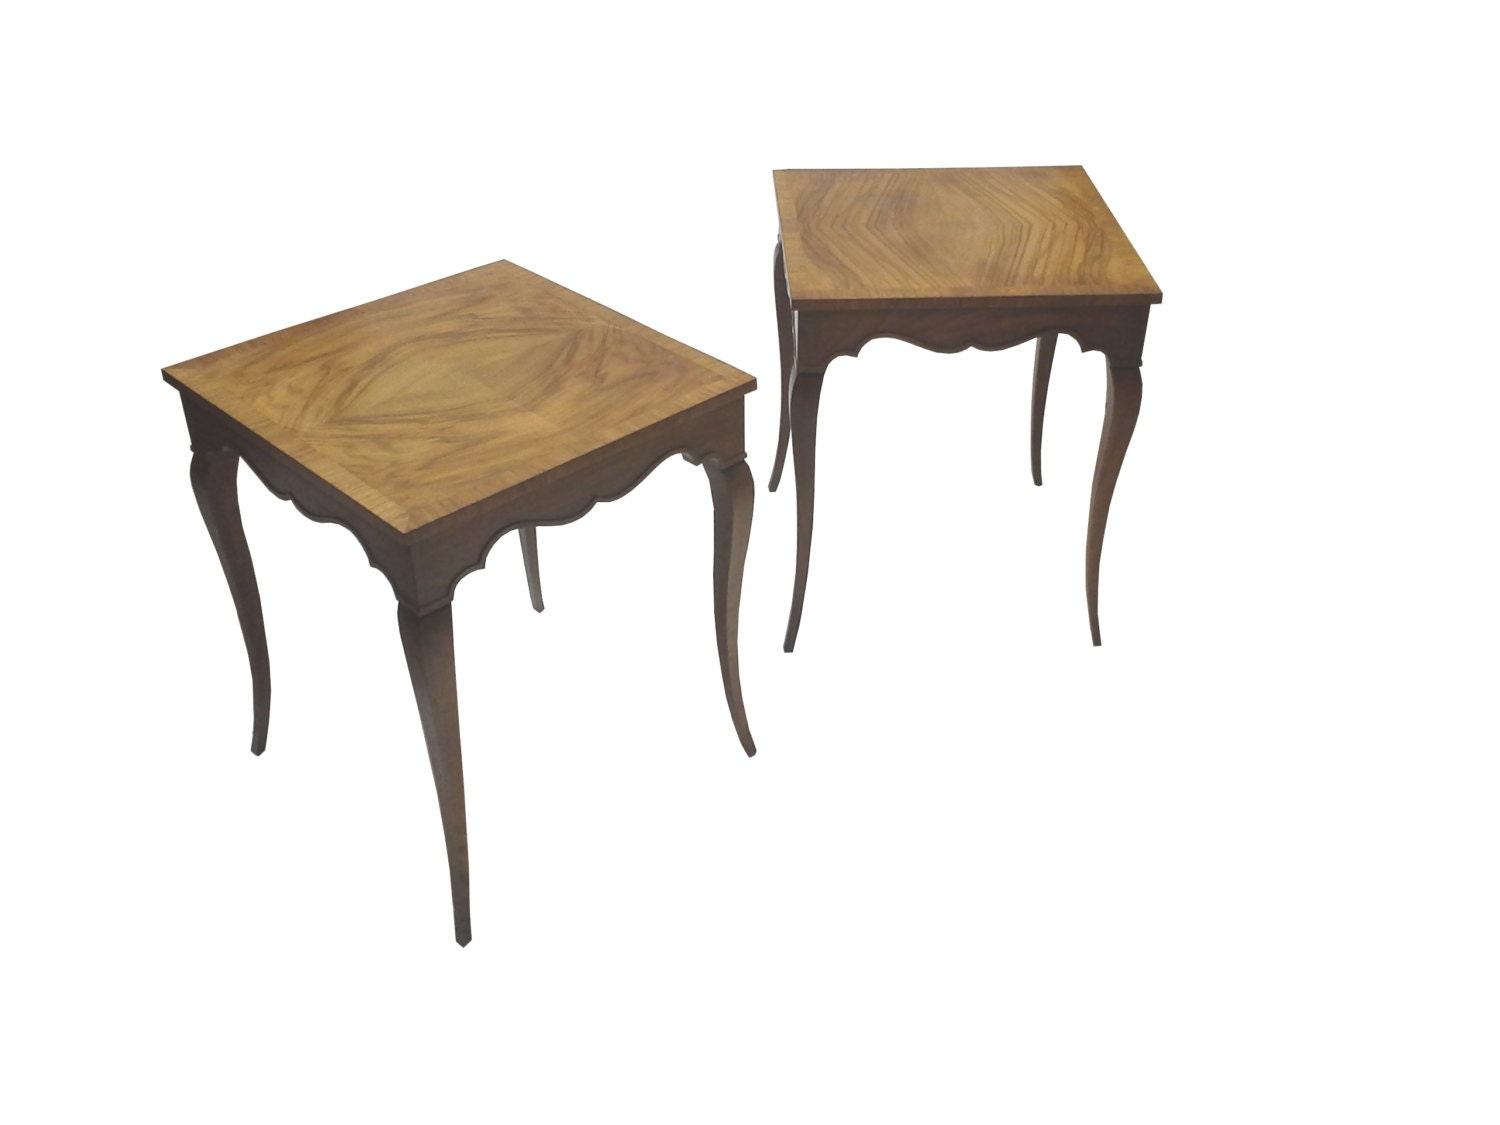 Vintage Baker Furniture End Tables Pair By Picasovintage